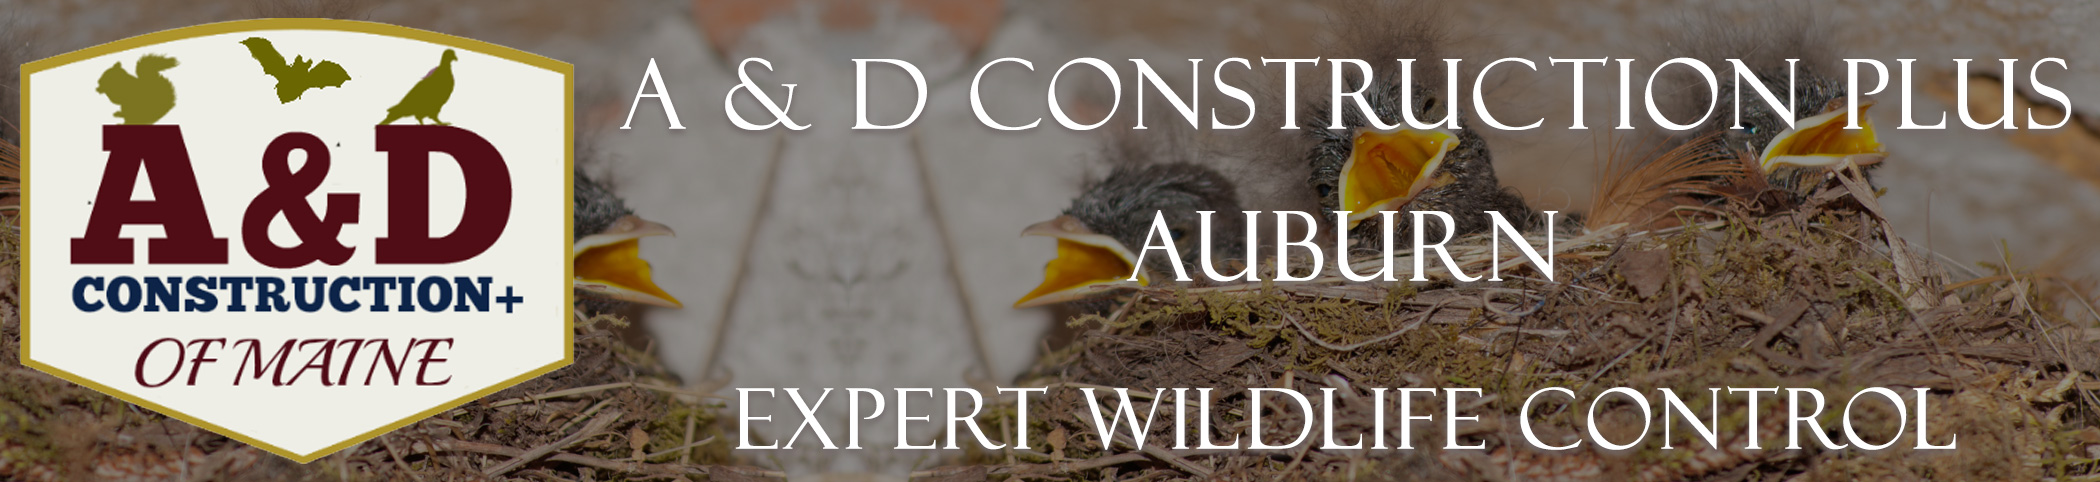 A AND D Construction PLUS Bat Removal Auburn Maine